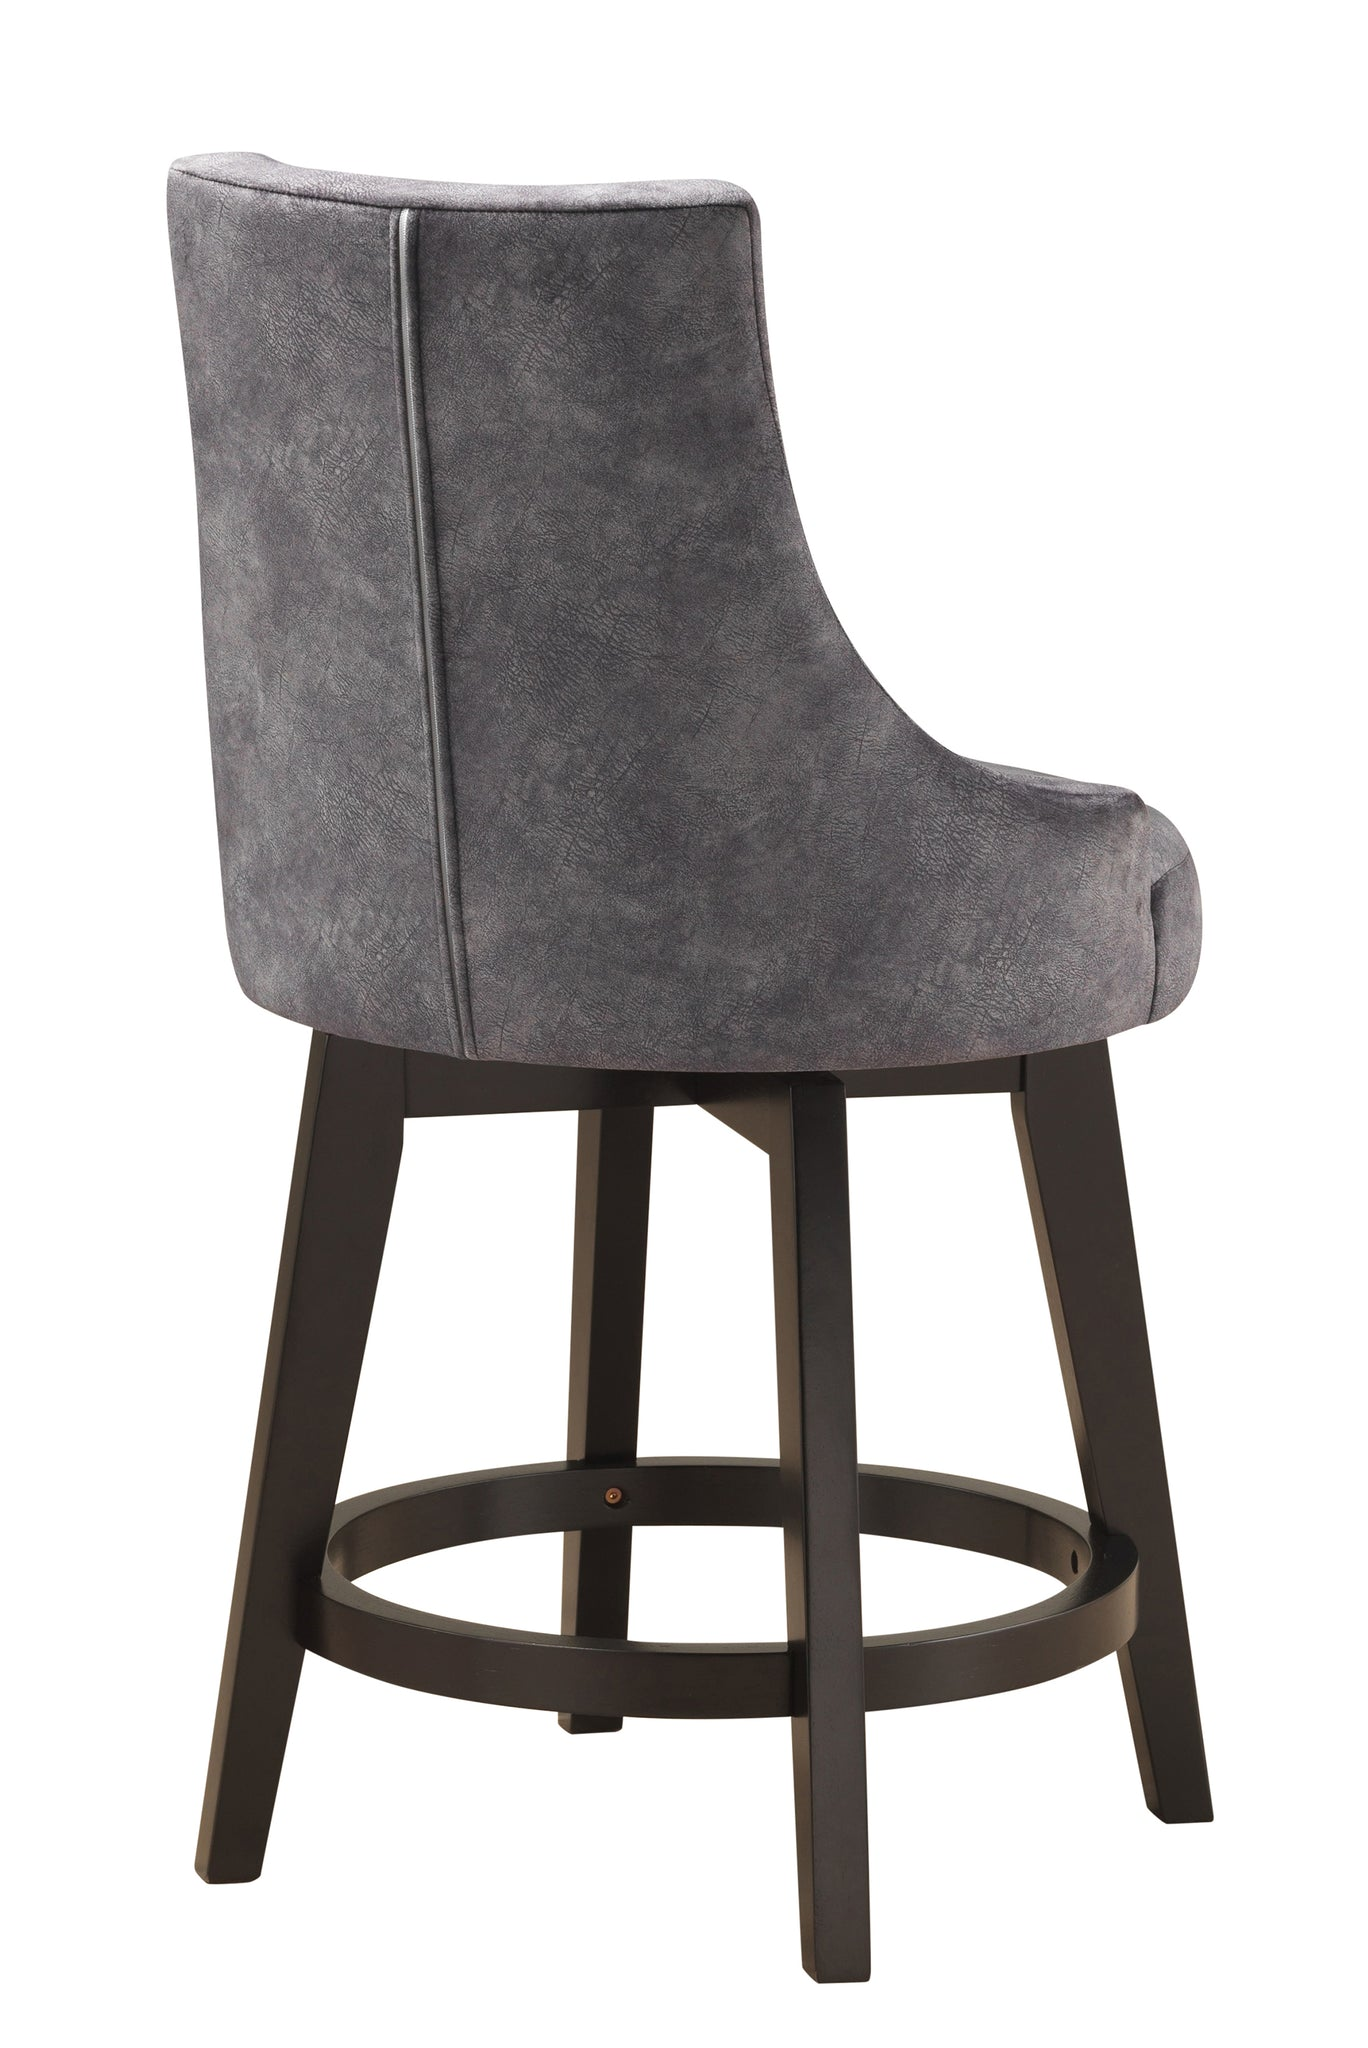 Walden 25h Swivel Counter Height Bar Stools Gray Fabric